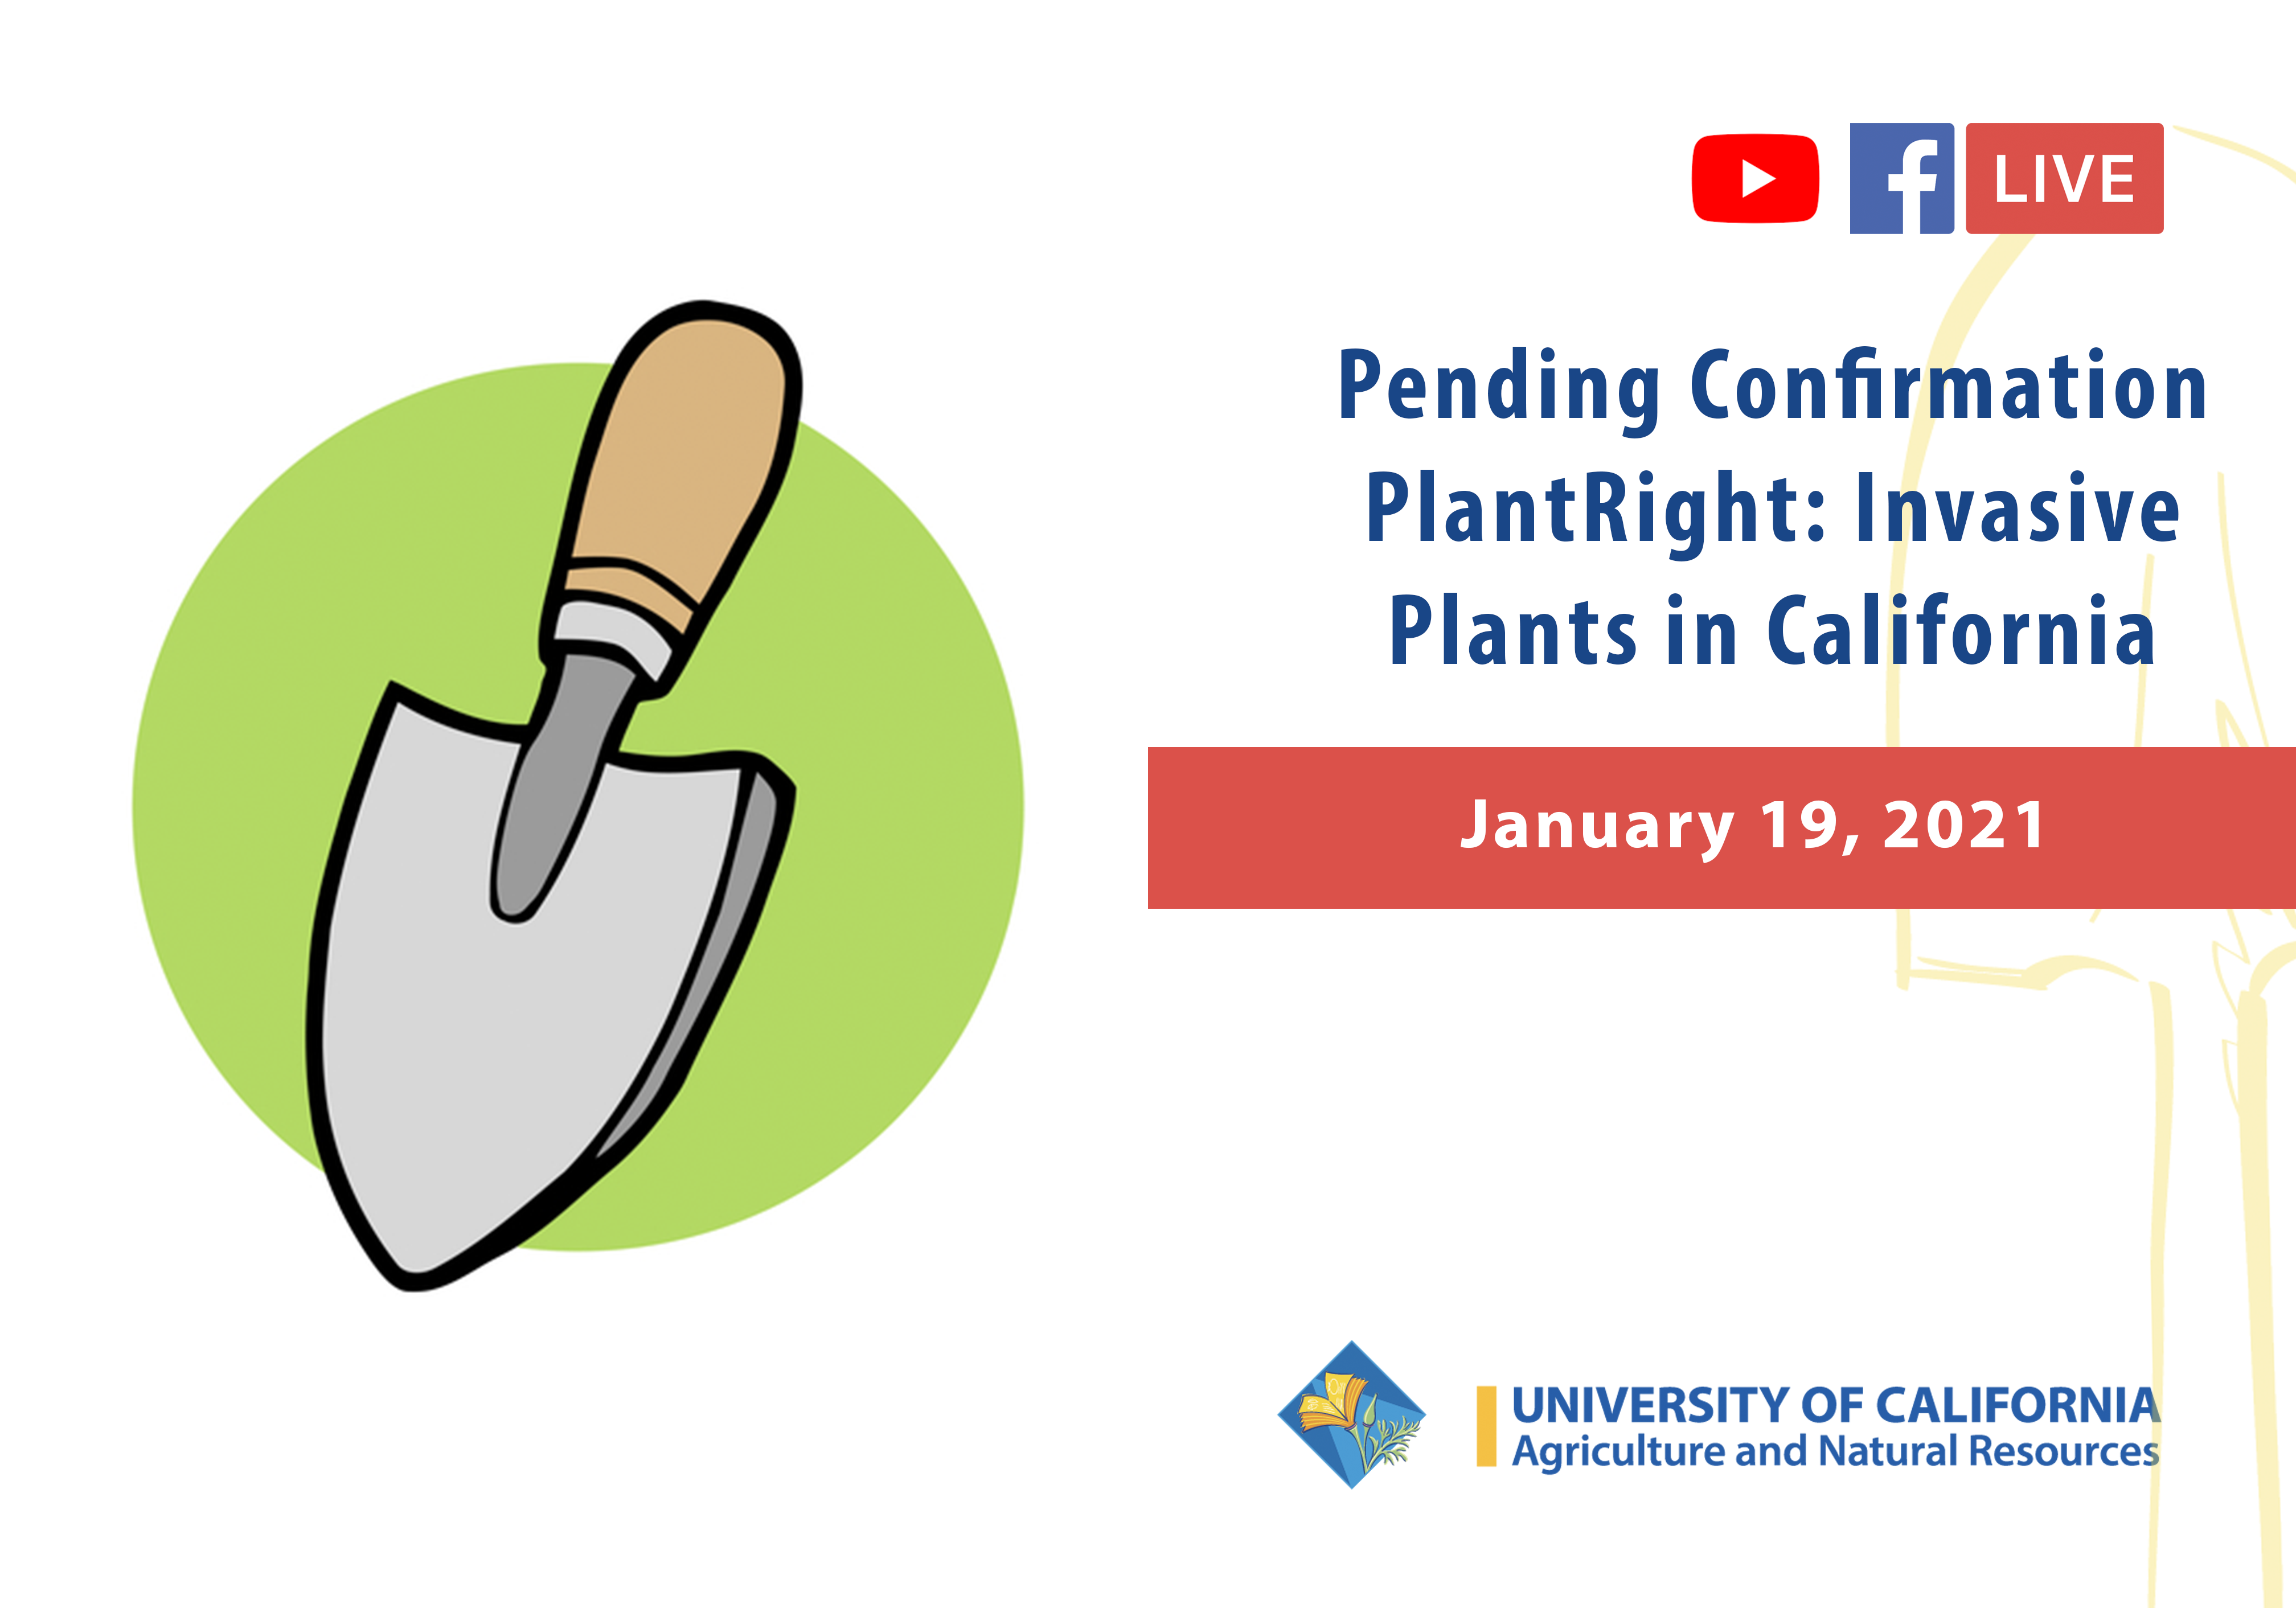 Pending Confirmation. PlantRight: Invasive Plants in California. 1/19/21